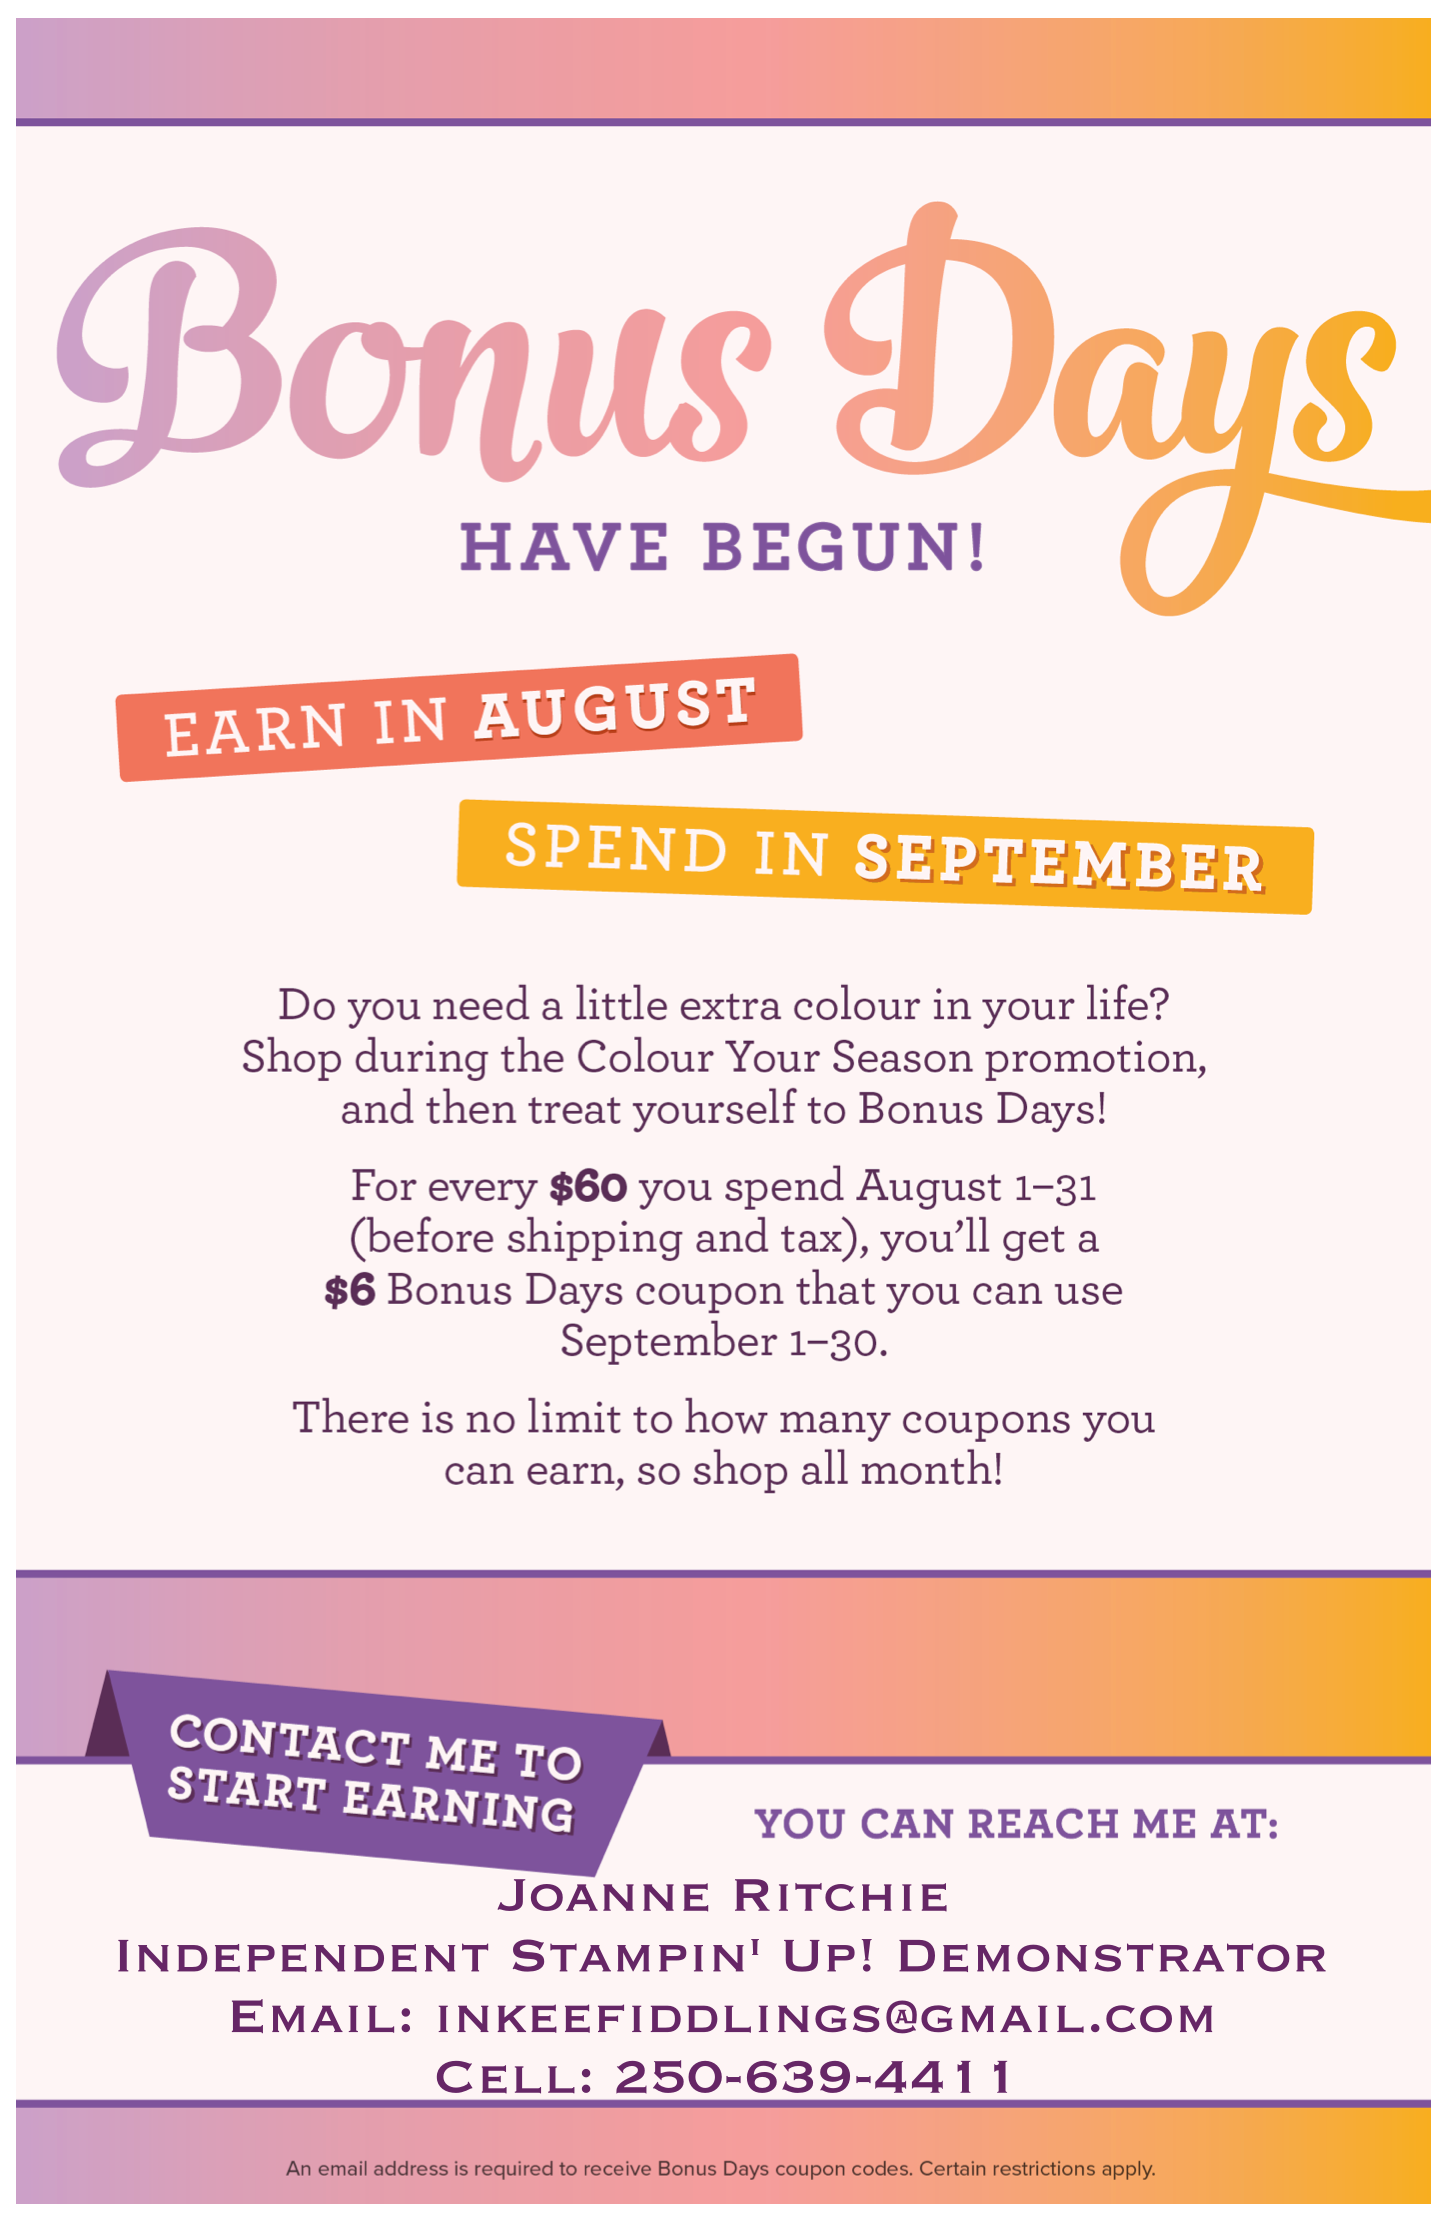 Bonus Days in August